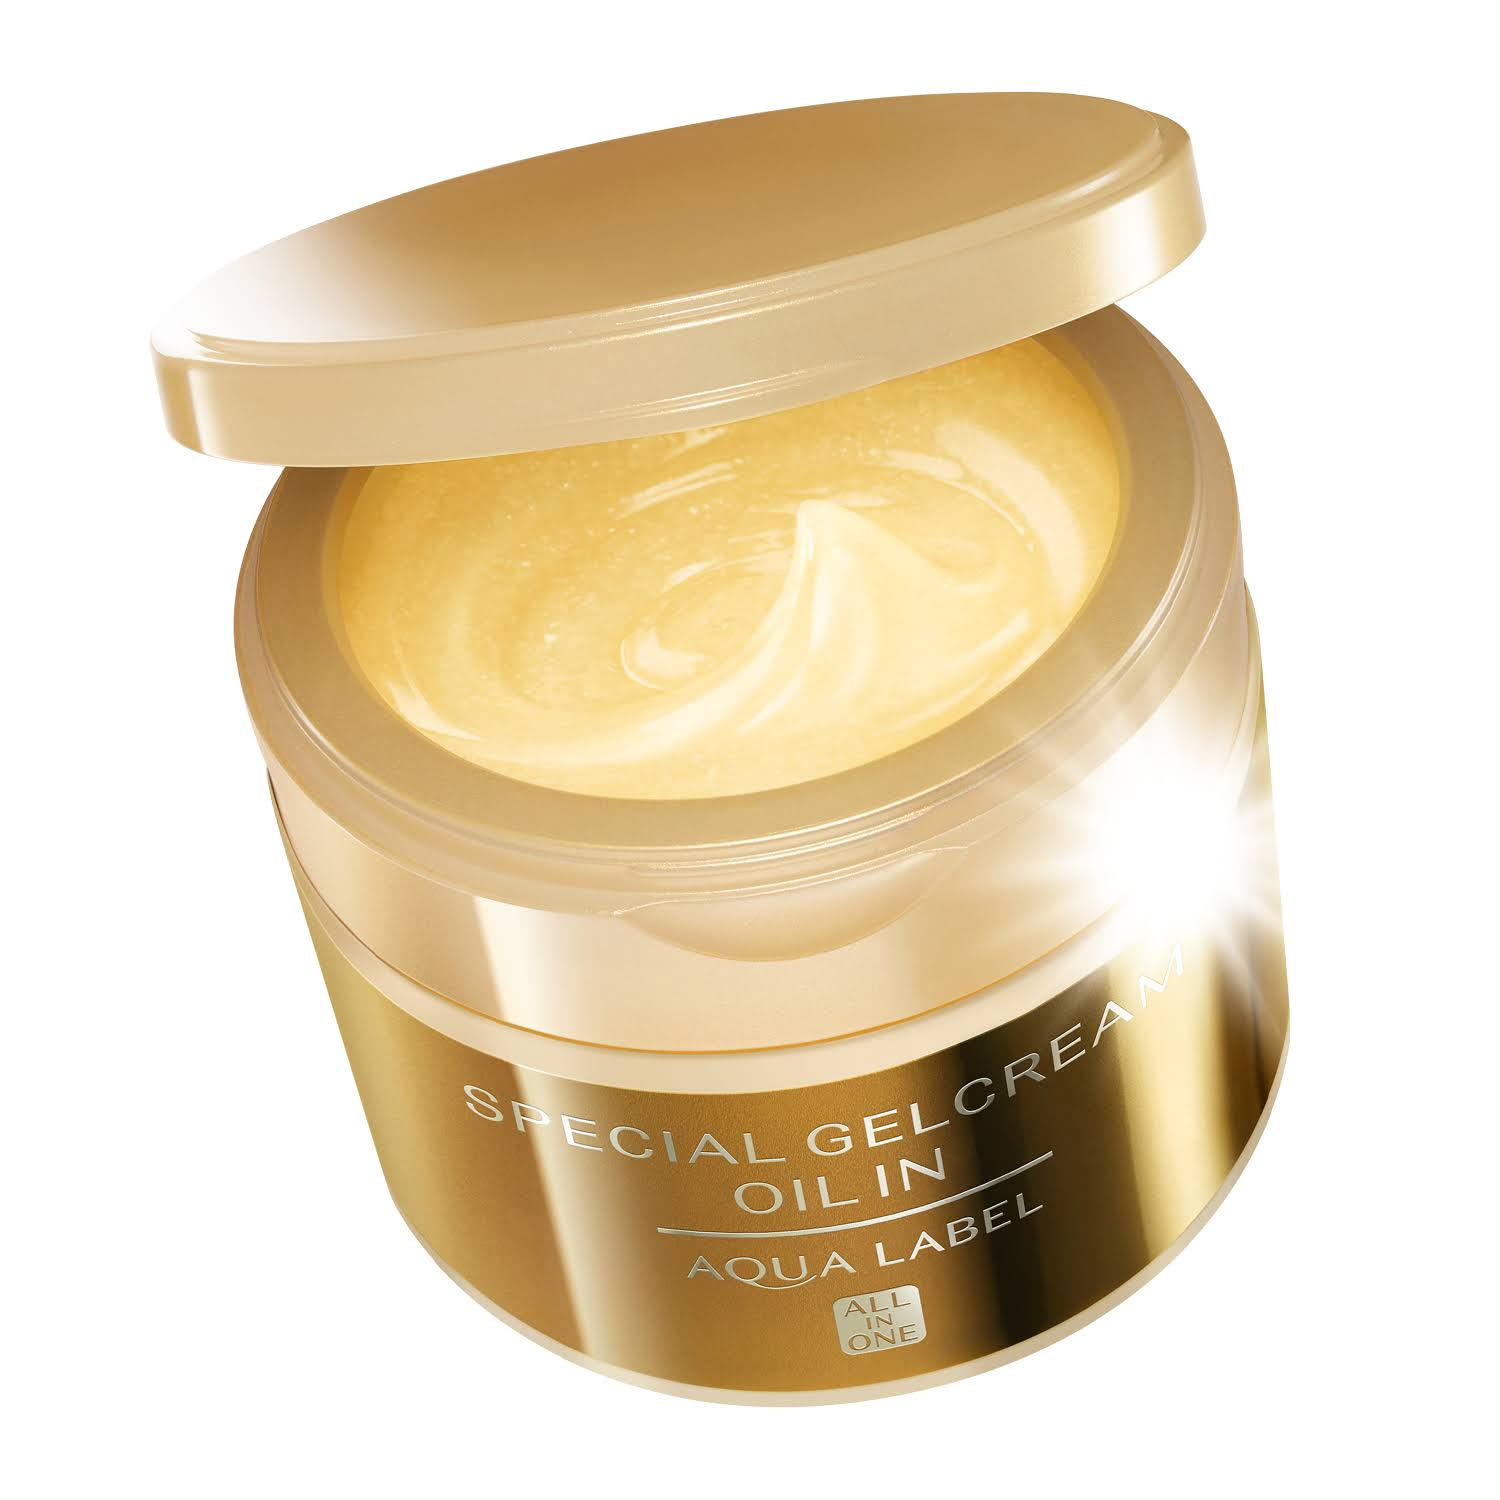 Shiseido Aqualabel Special Gel Cream Oil In All in One Facial Moisturizer - 90g